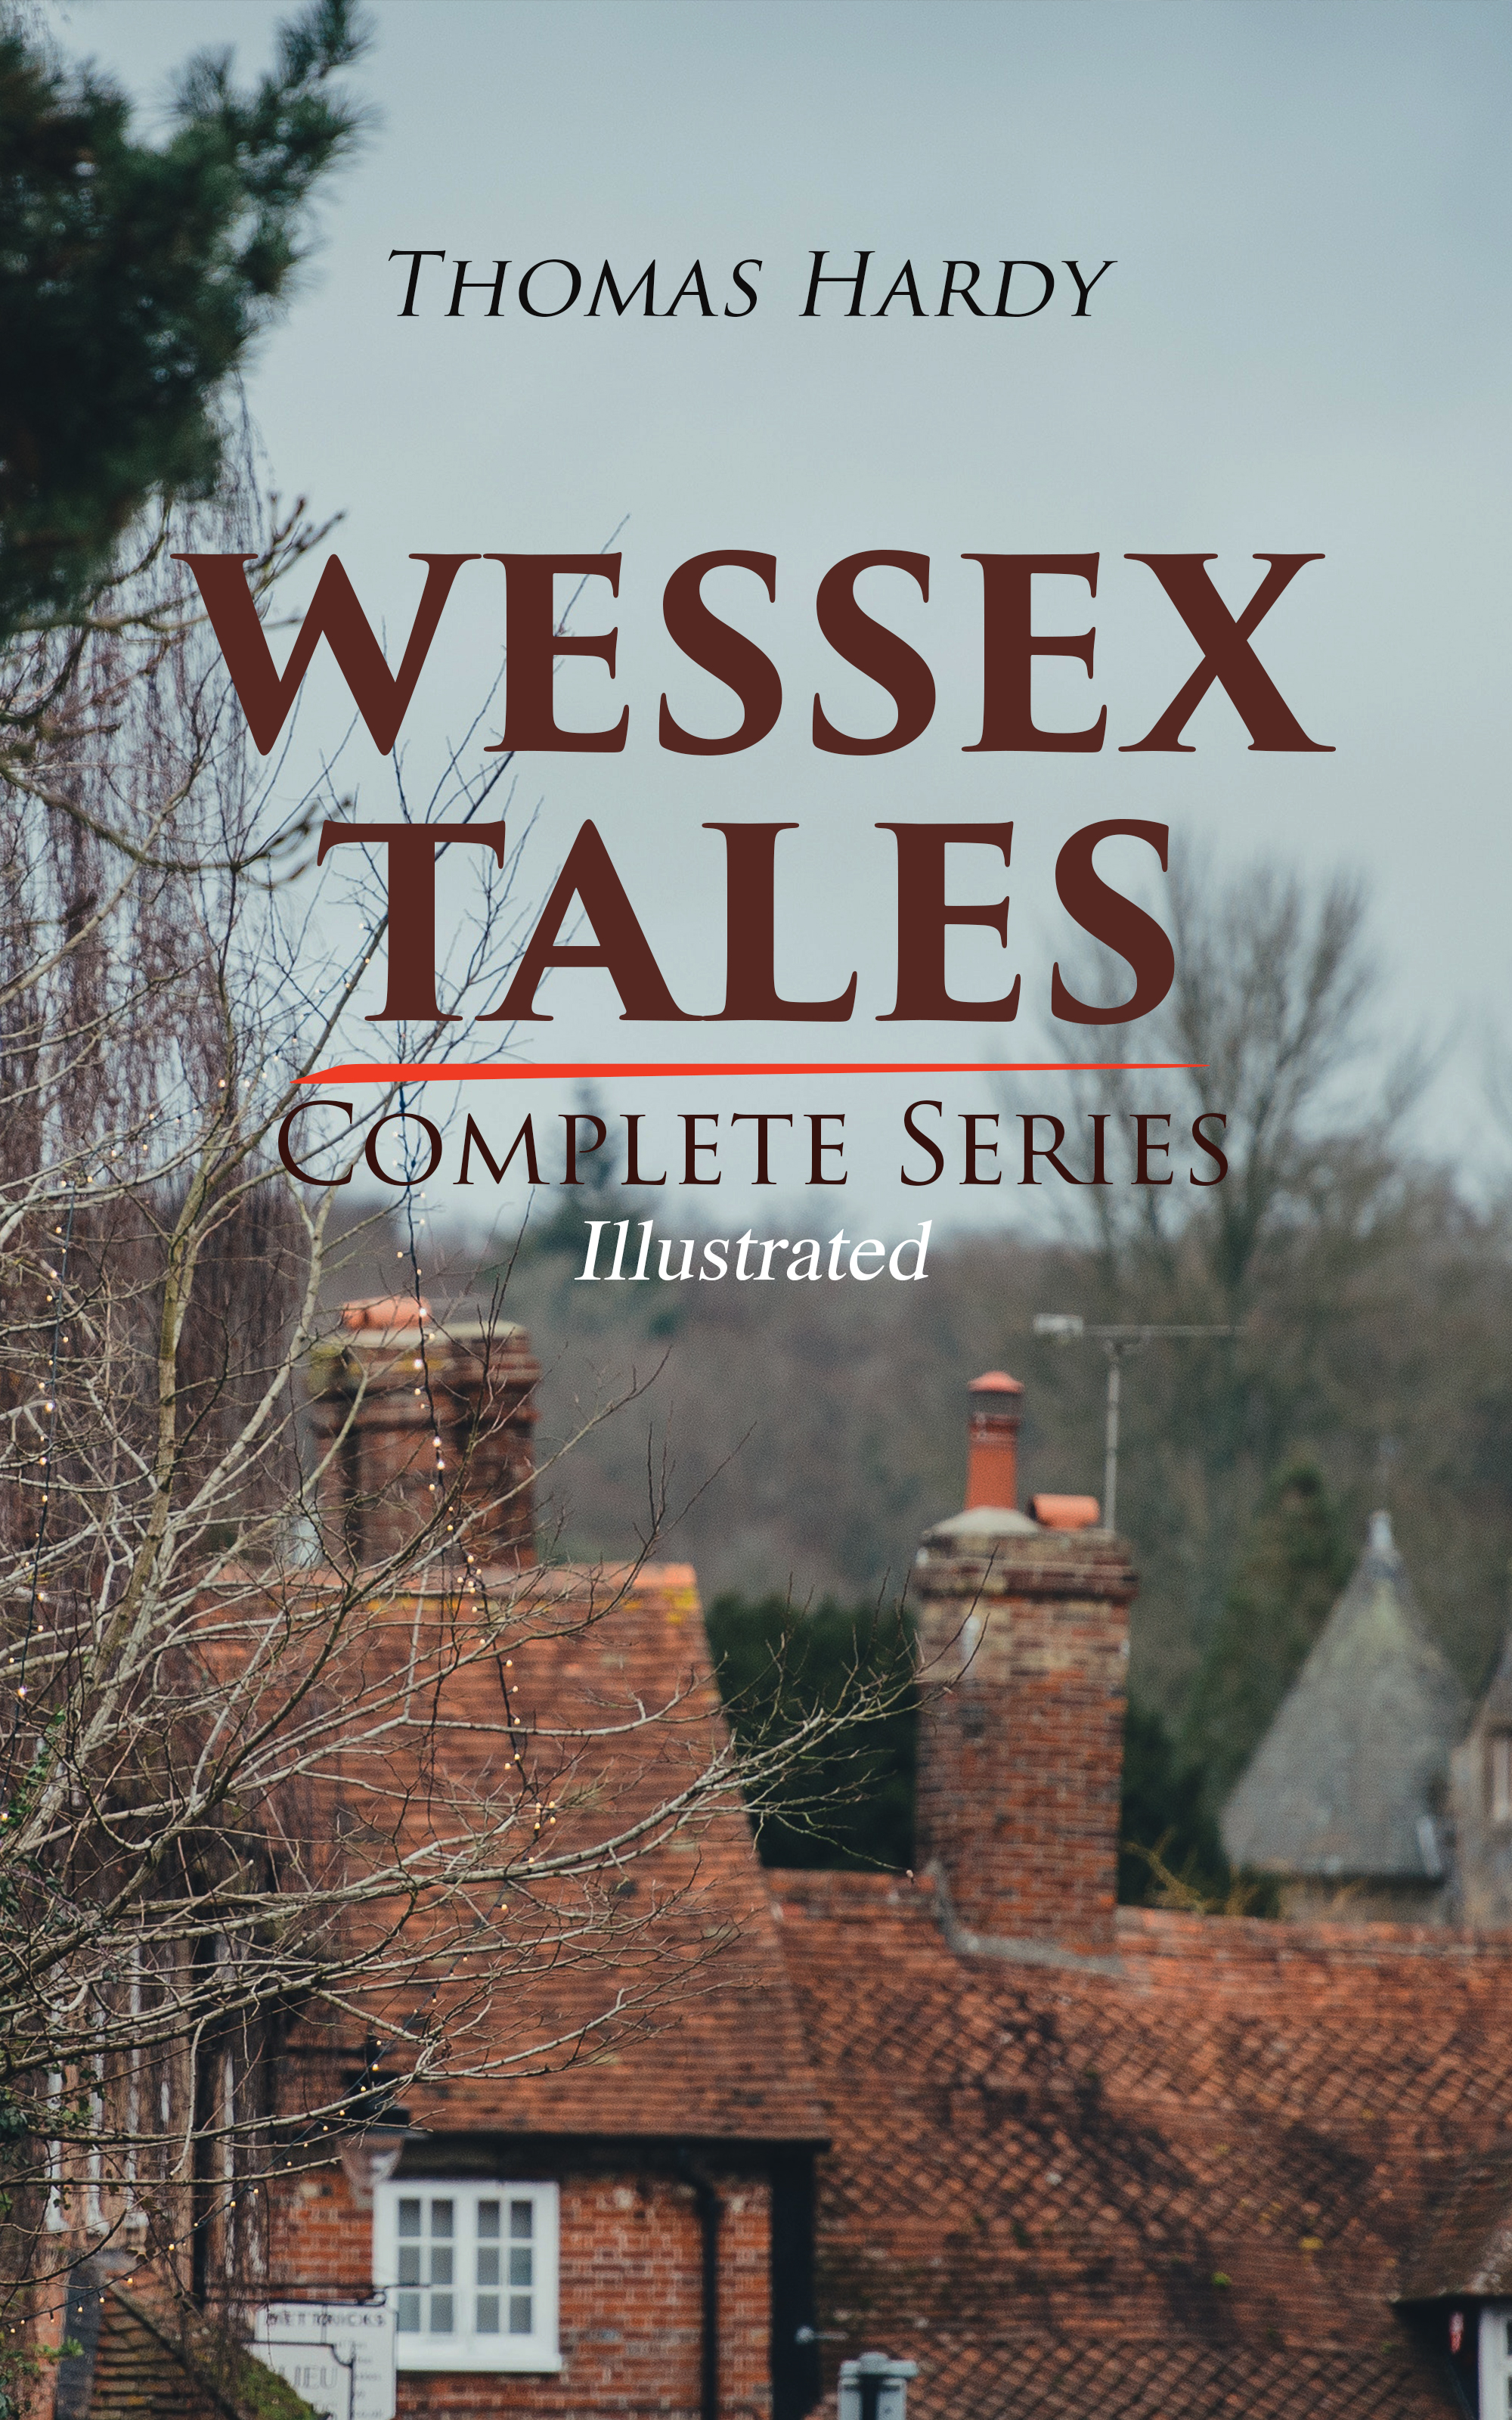 Томас Харди WESSEX TALES - Complete Series (Illustrated) berentes apple r logo – a complete illustrated handbook paper only